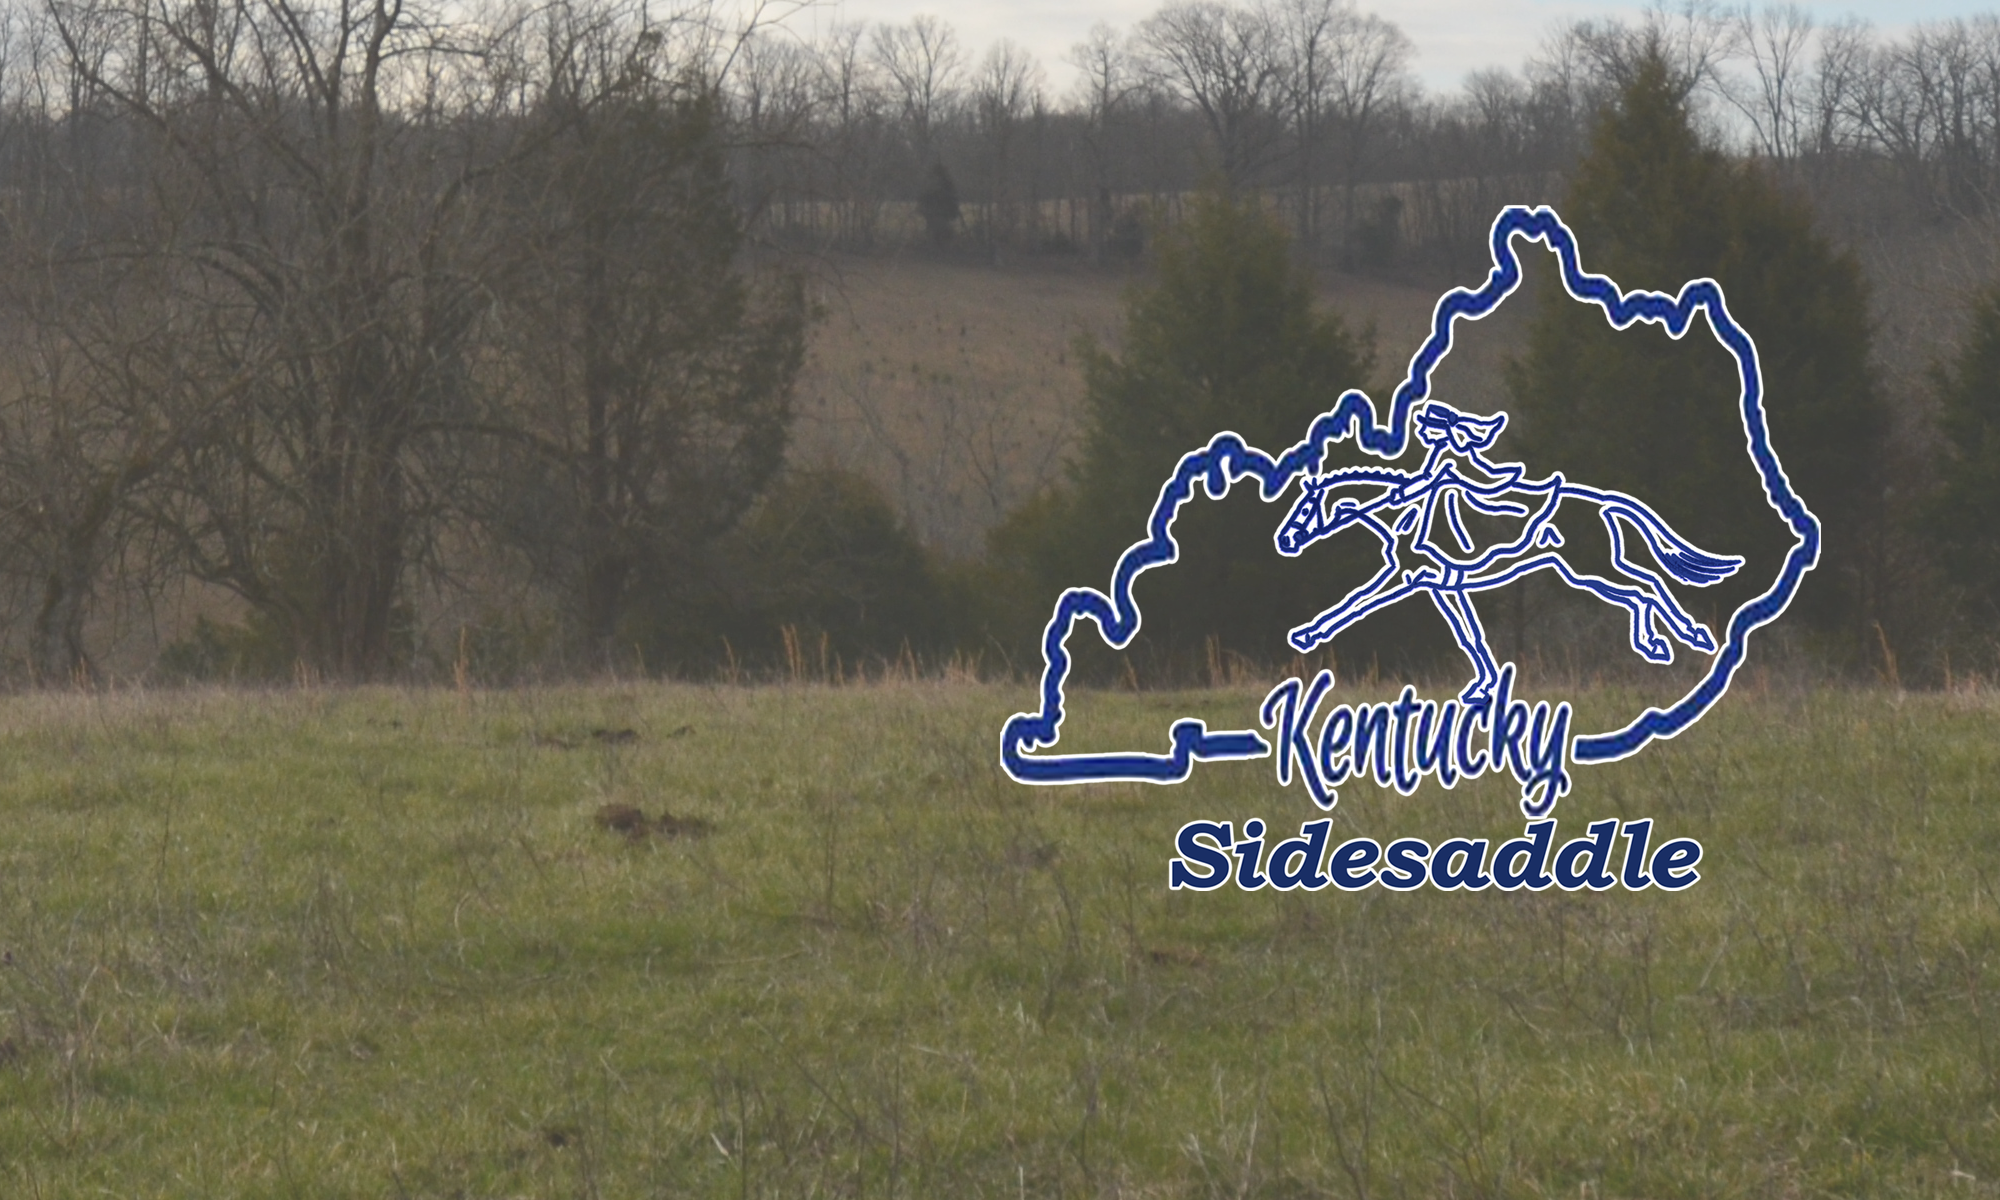 Kentucky Sidesaddle